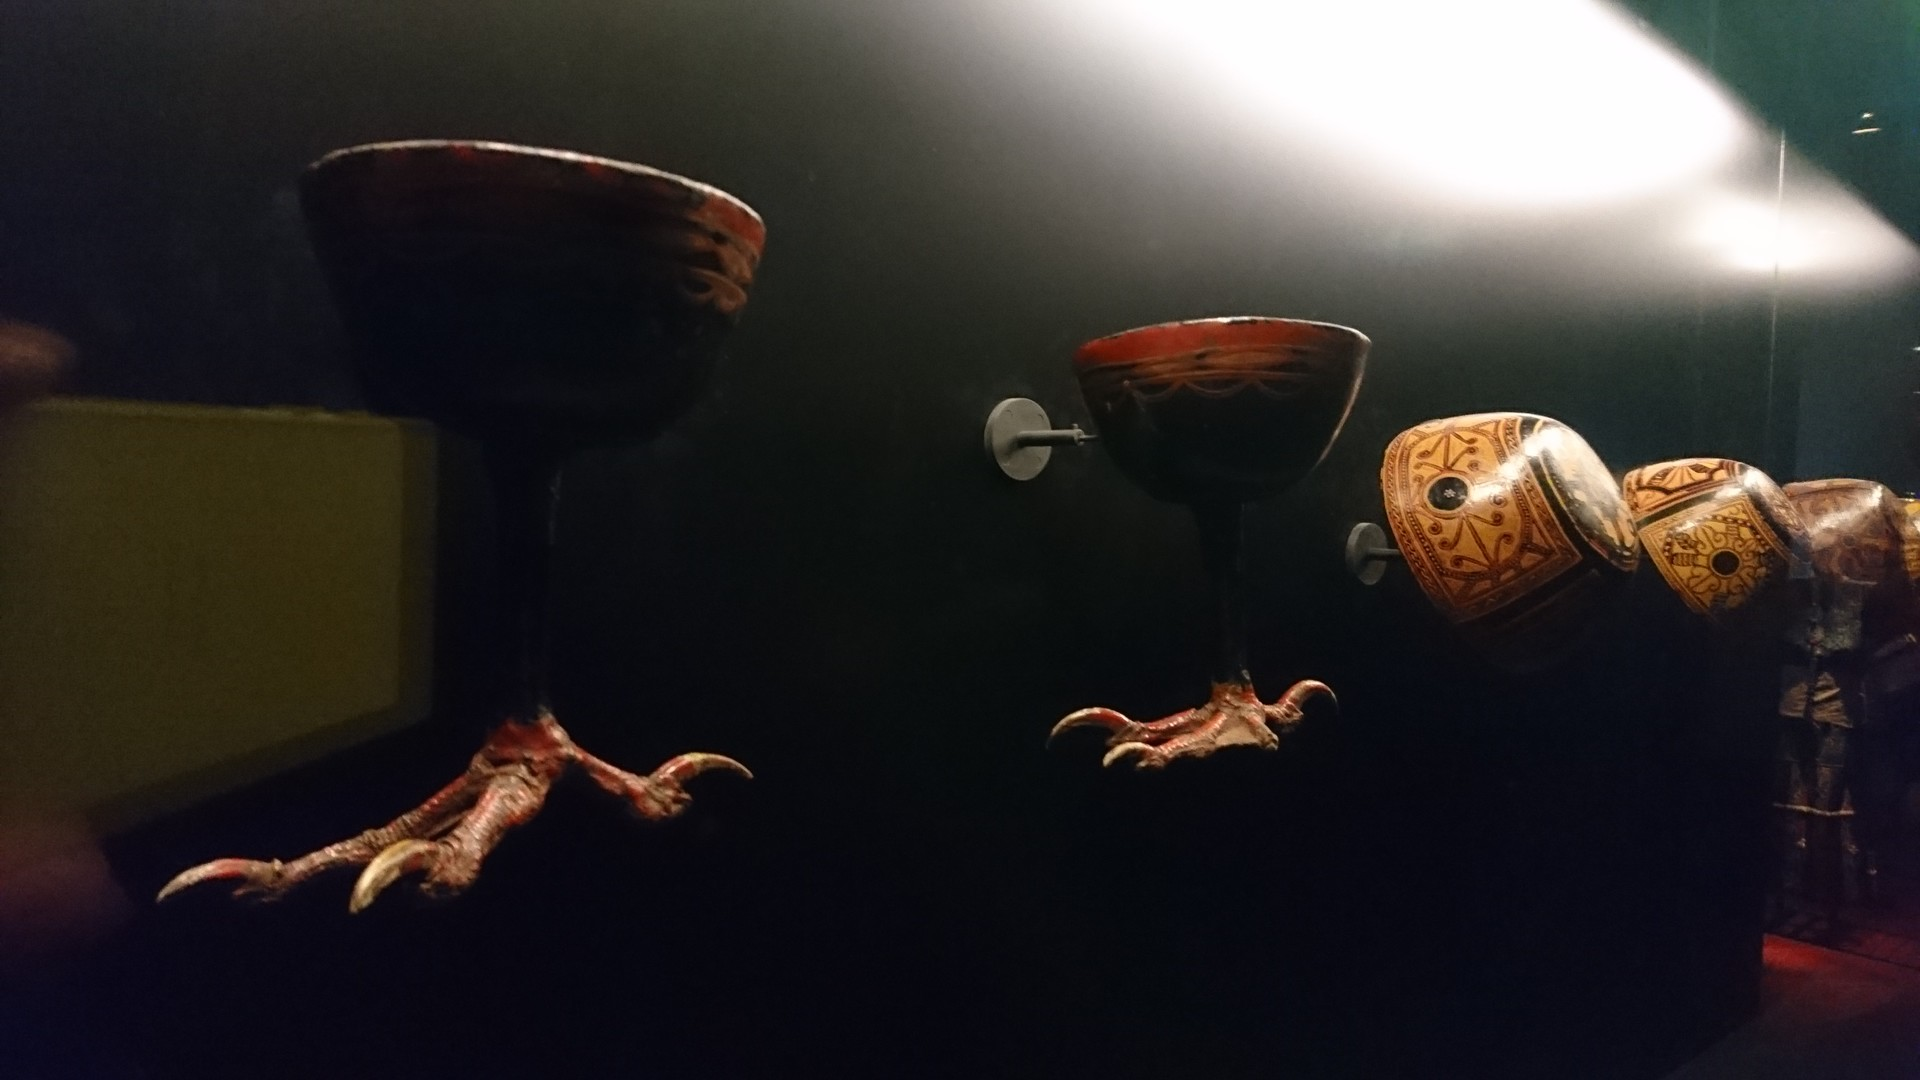 a-large-collection-artefacts-world-e99f0